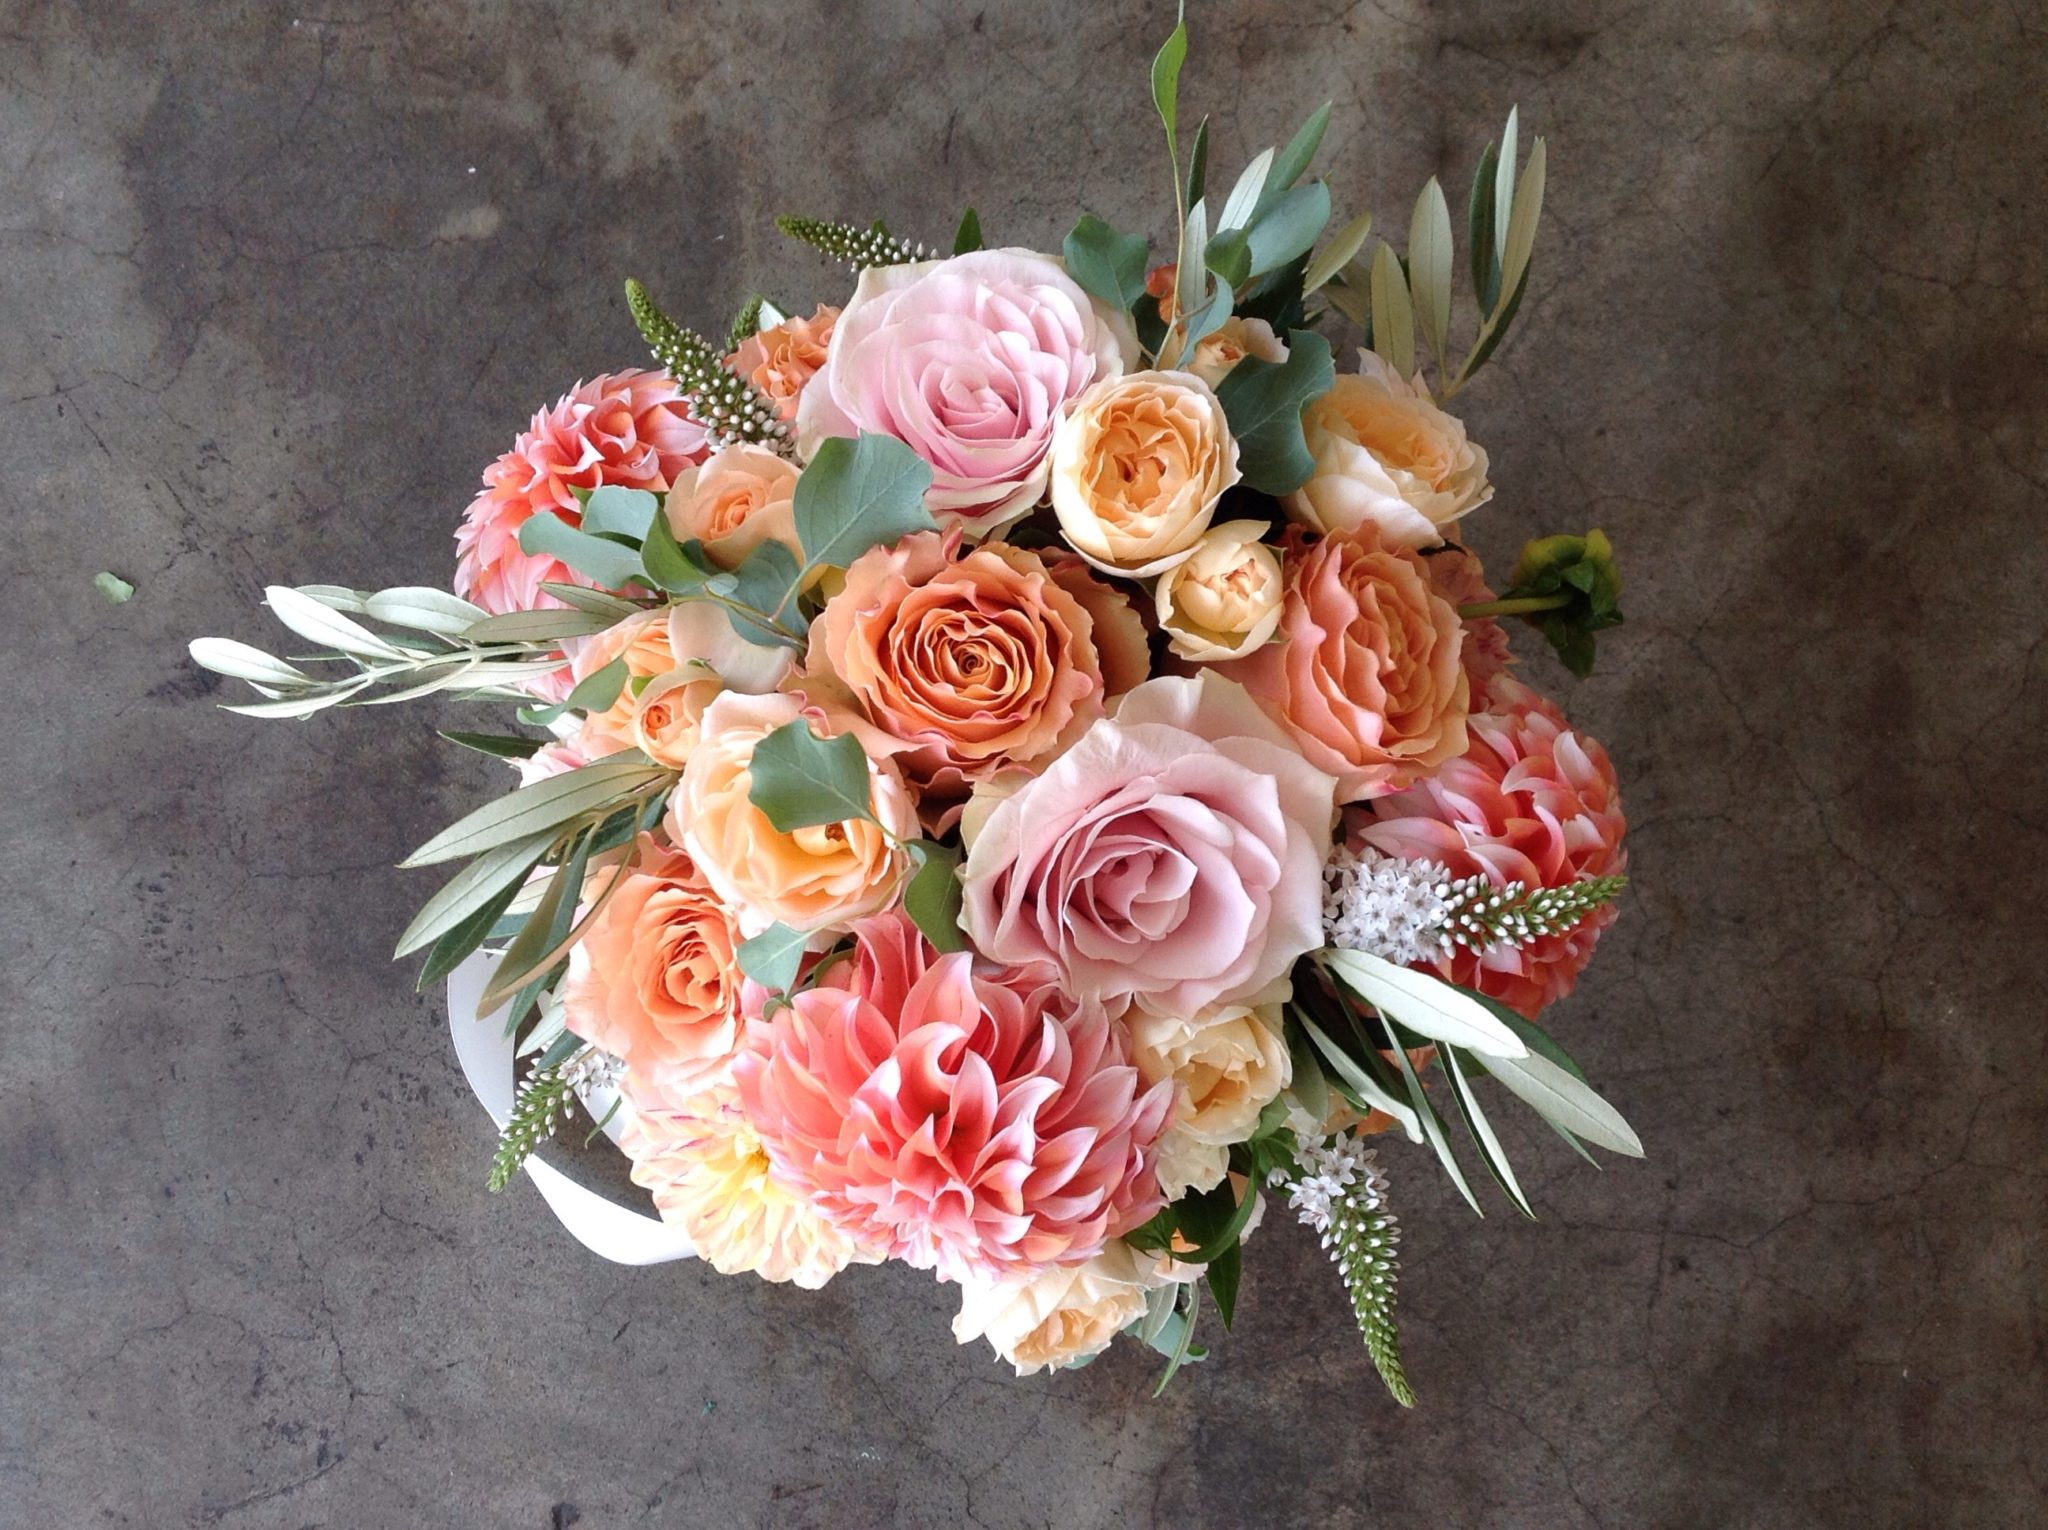 Classic Pastel Nosegay Style Bride Bouquet with summer Dahlias and Roses.